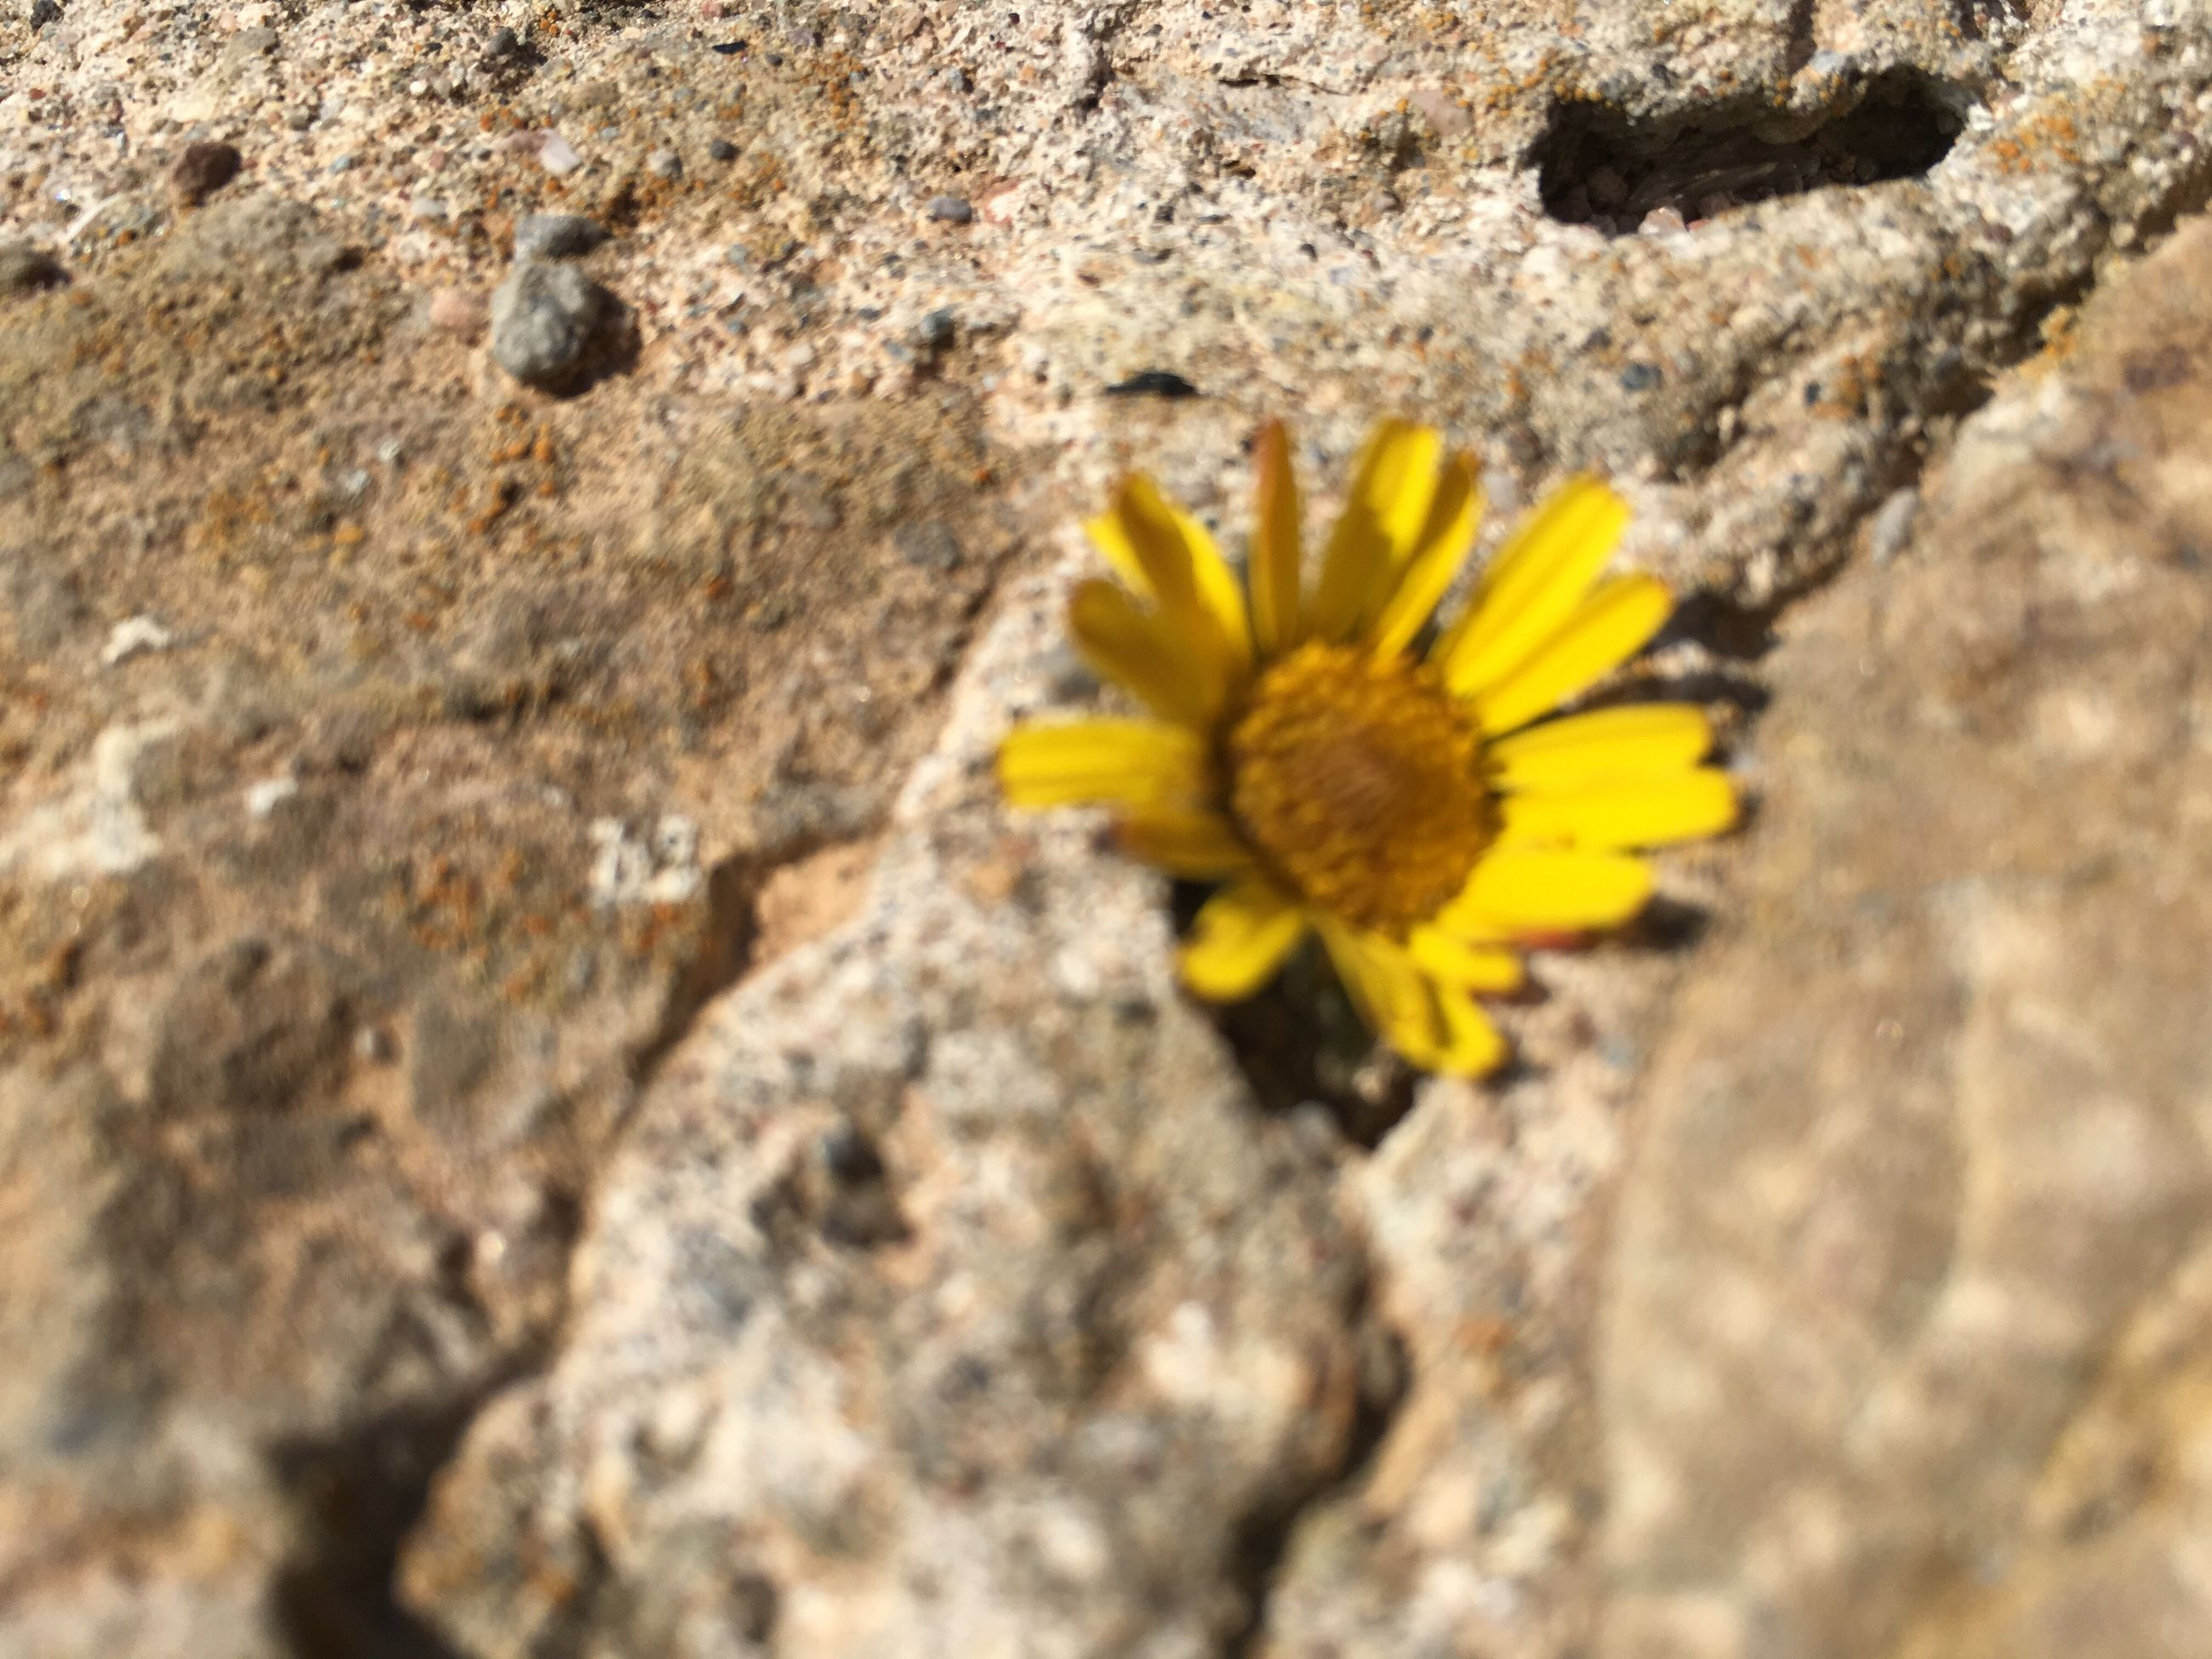 flower, yellow, petal, fragility, nature, freshness, flower head, close-up, beauty in nature, growth, textured, rock - object, single flower, selective focus, pollen, high angle view, day, outdoors, plant, no people